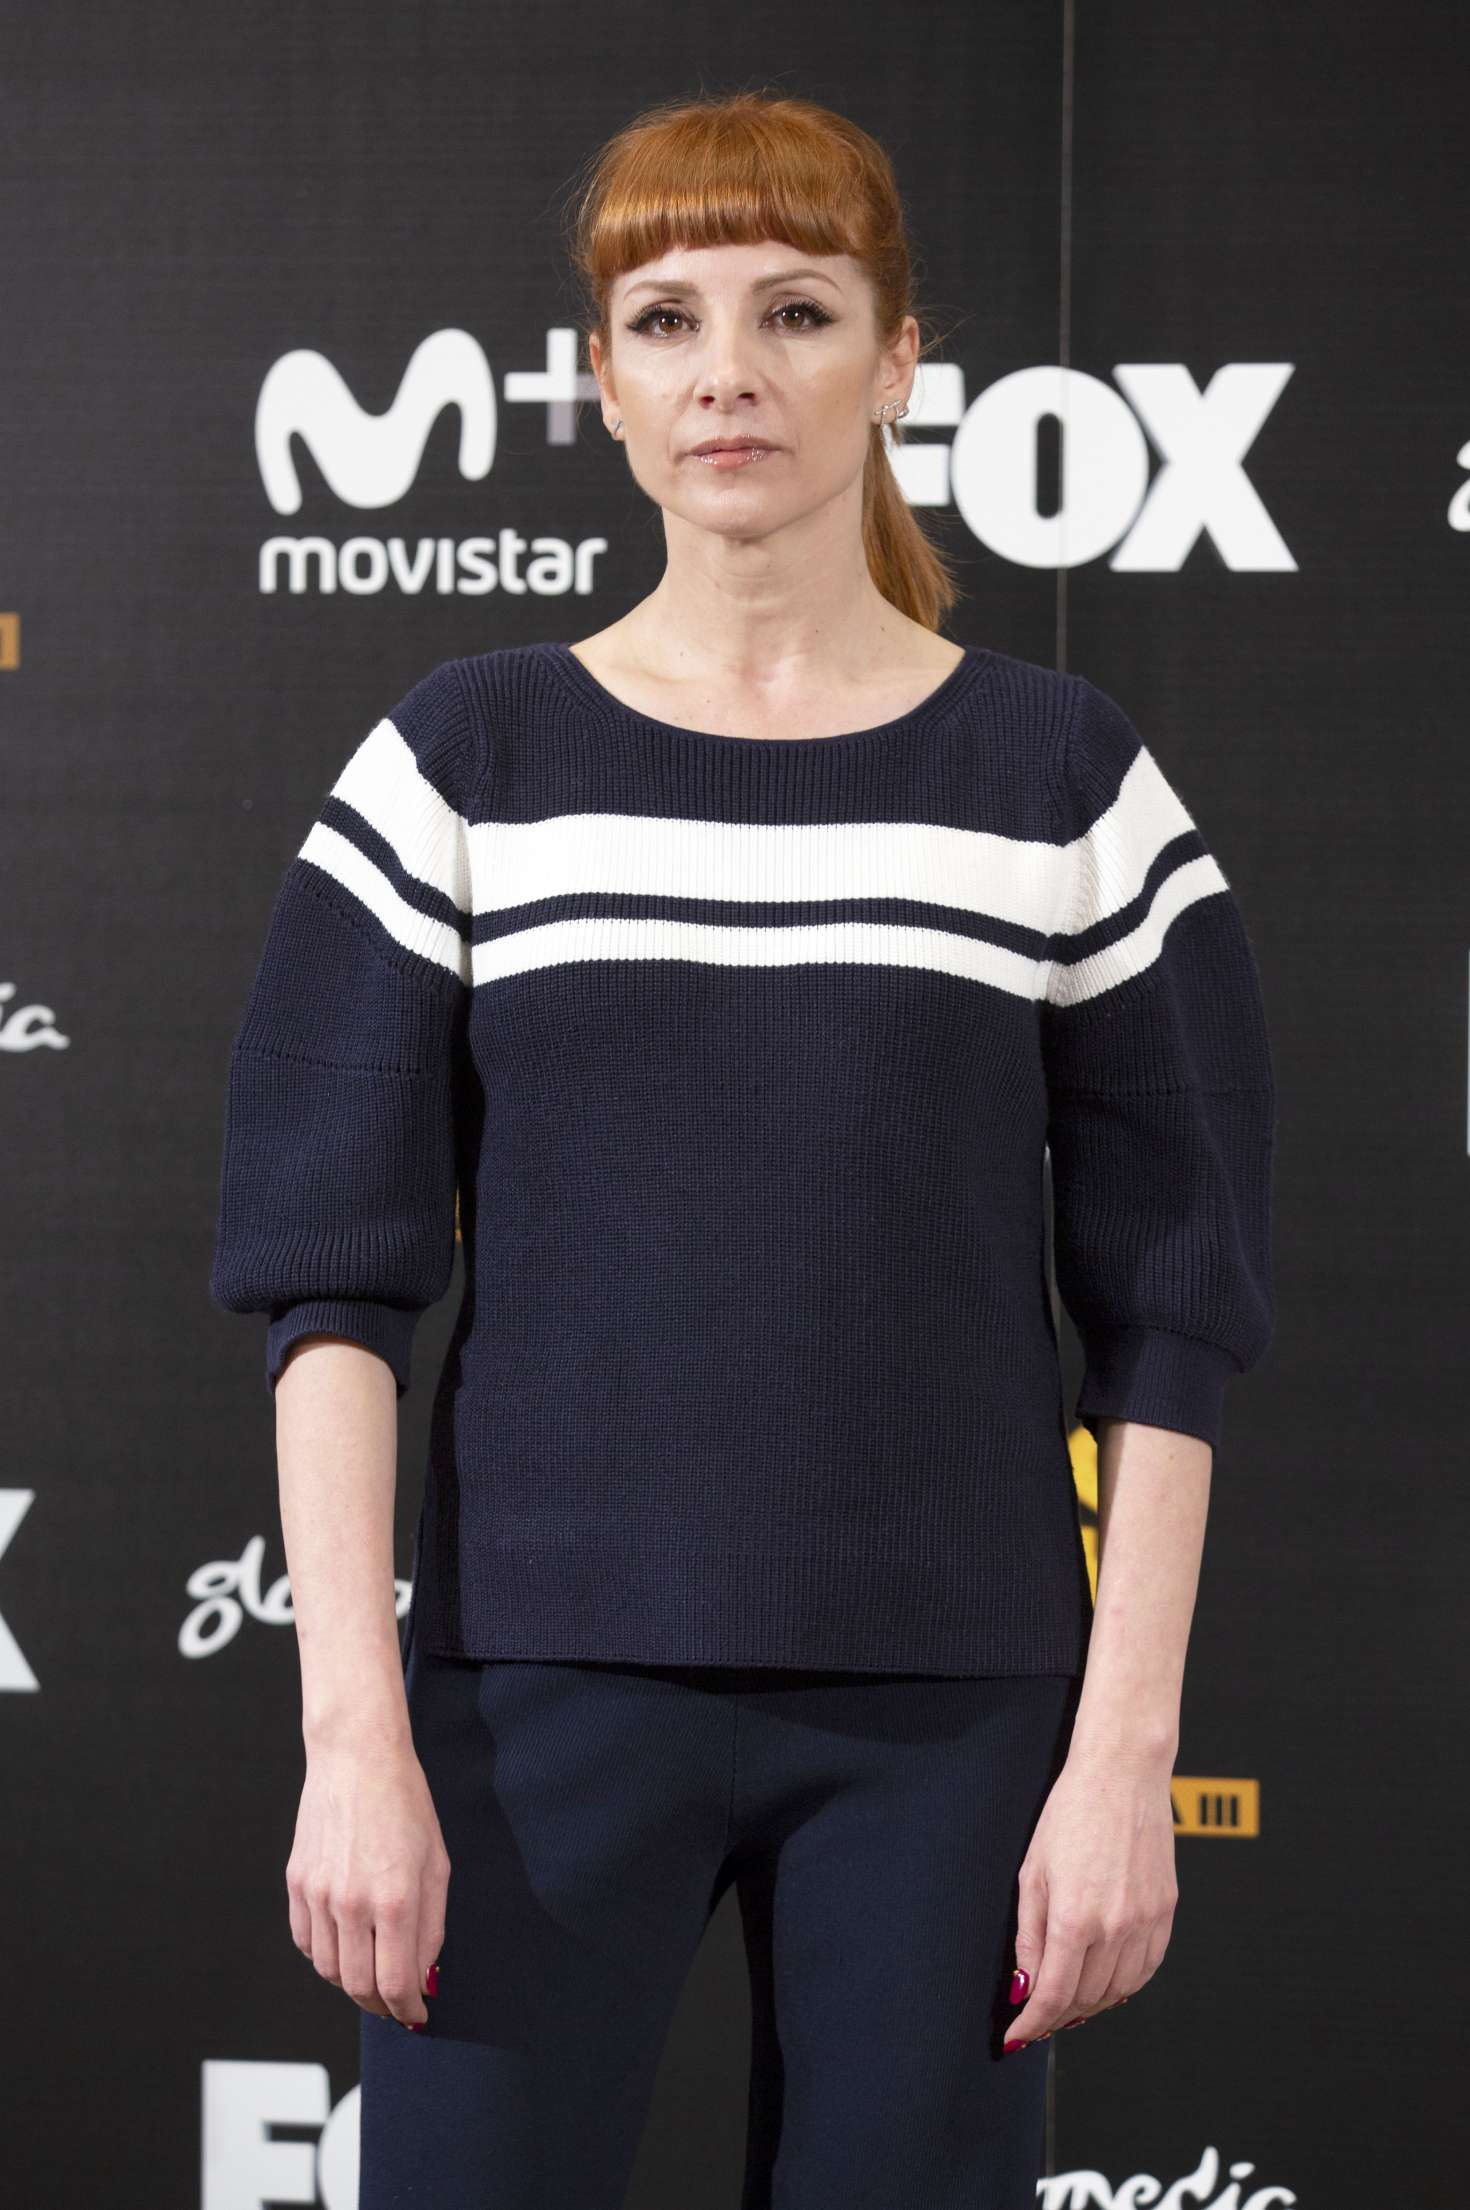 najwa nimri vis a vis photocall in madrid gotceleb. Black Bedroom Furniture Sets. Home Design Ideas